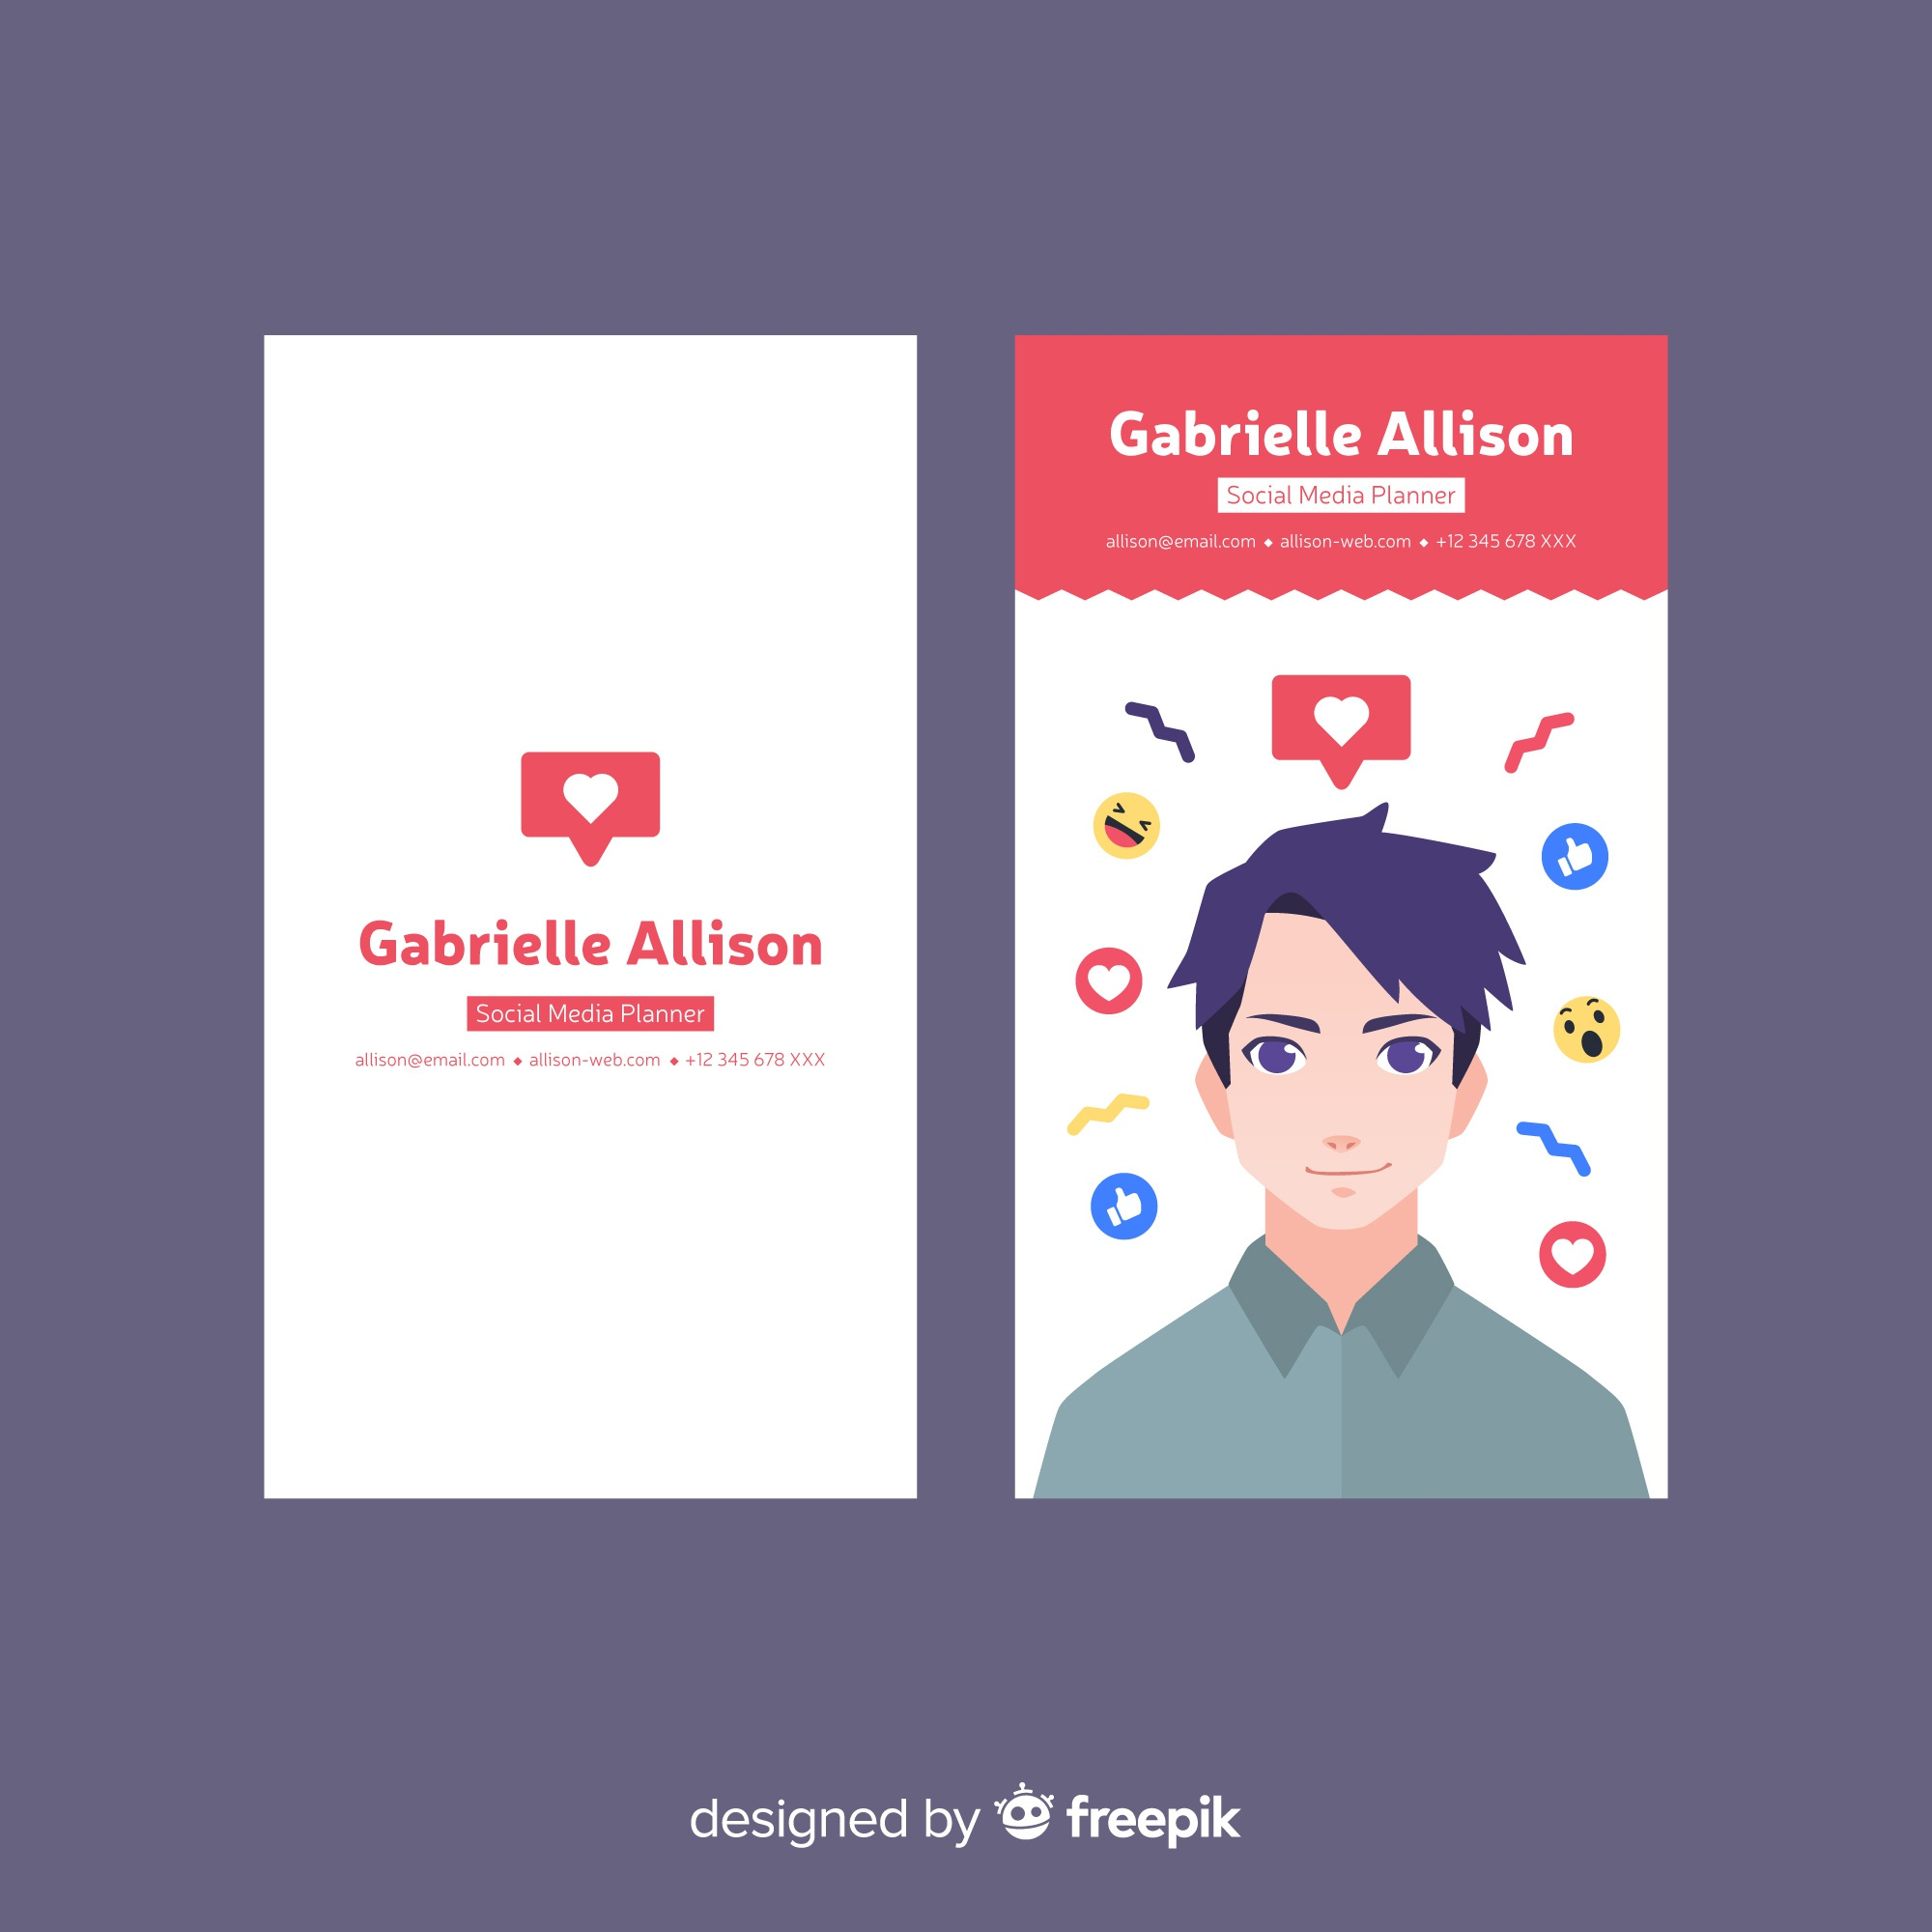 Abstract modern business card template with avatar of man